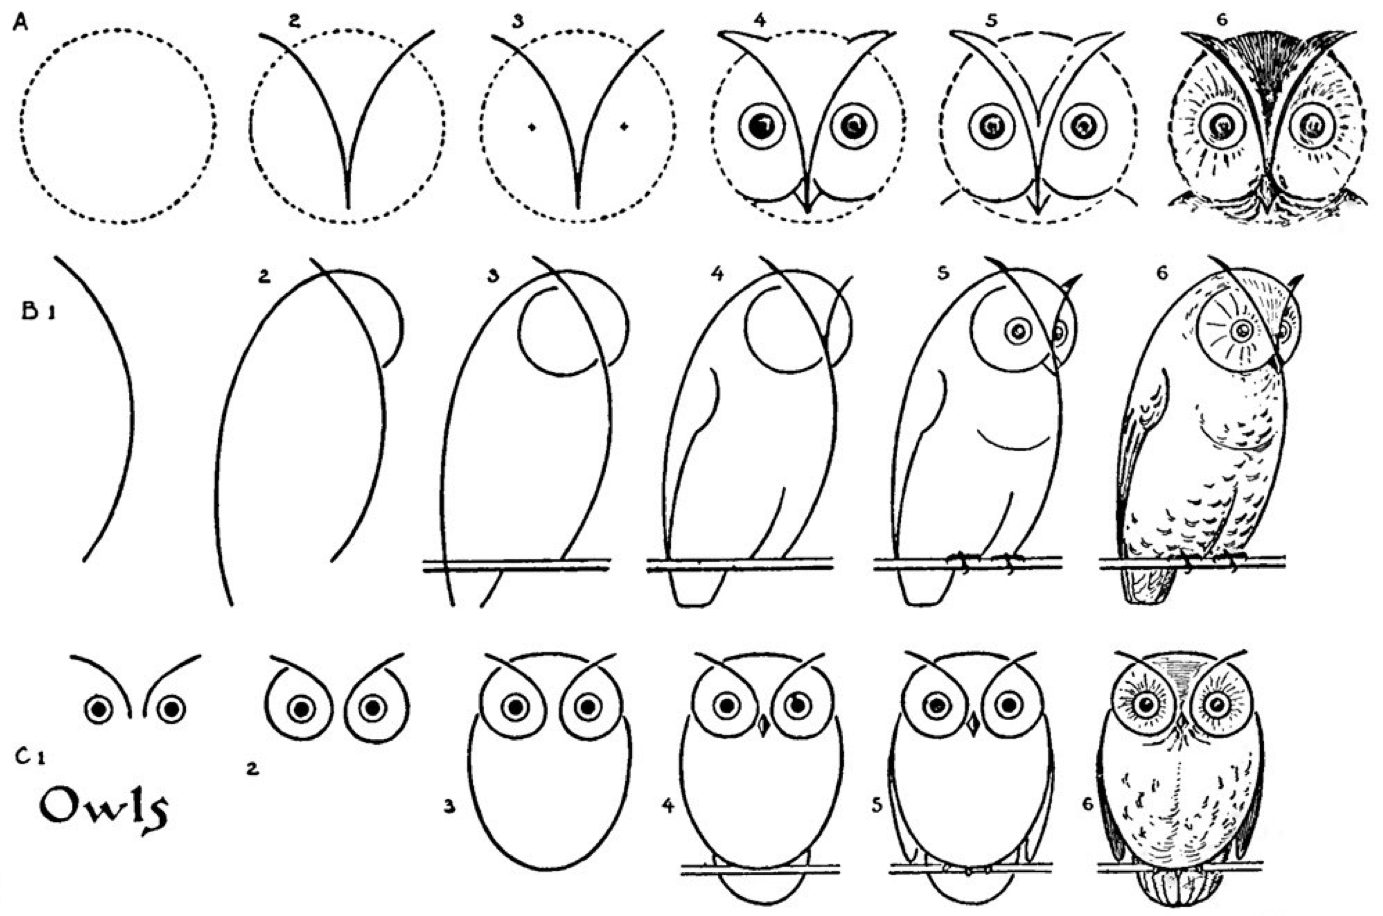 Tutorial on on how to draw an owl: step-by-step